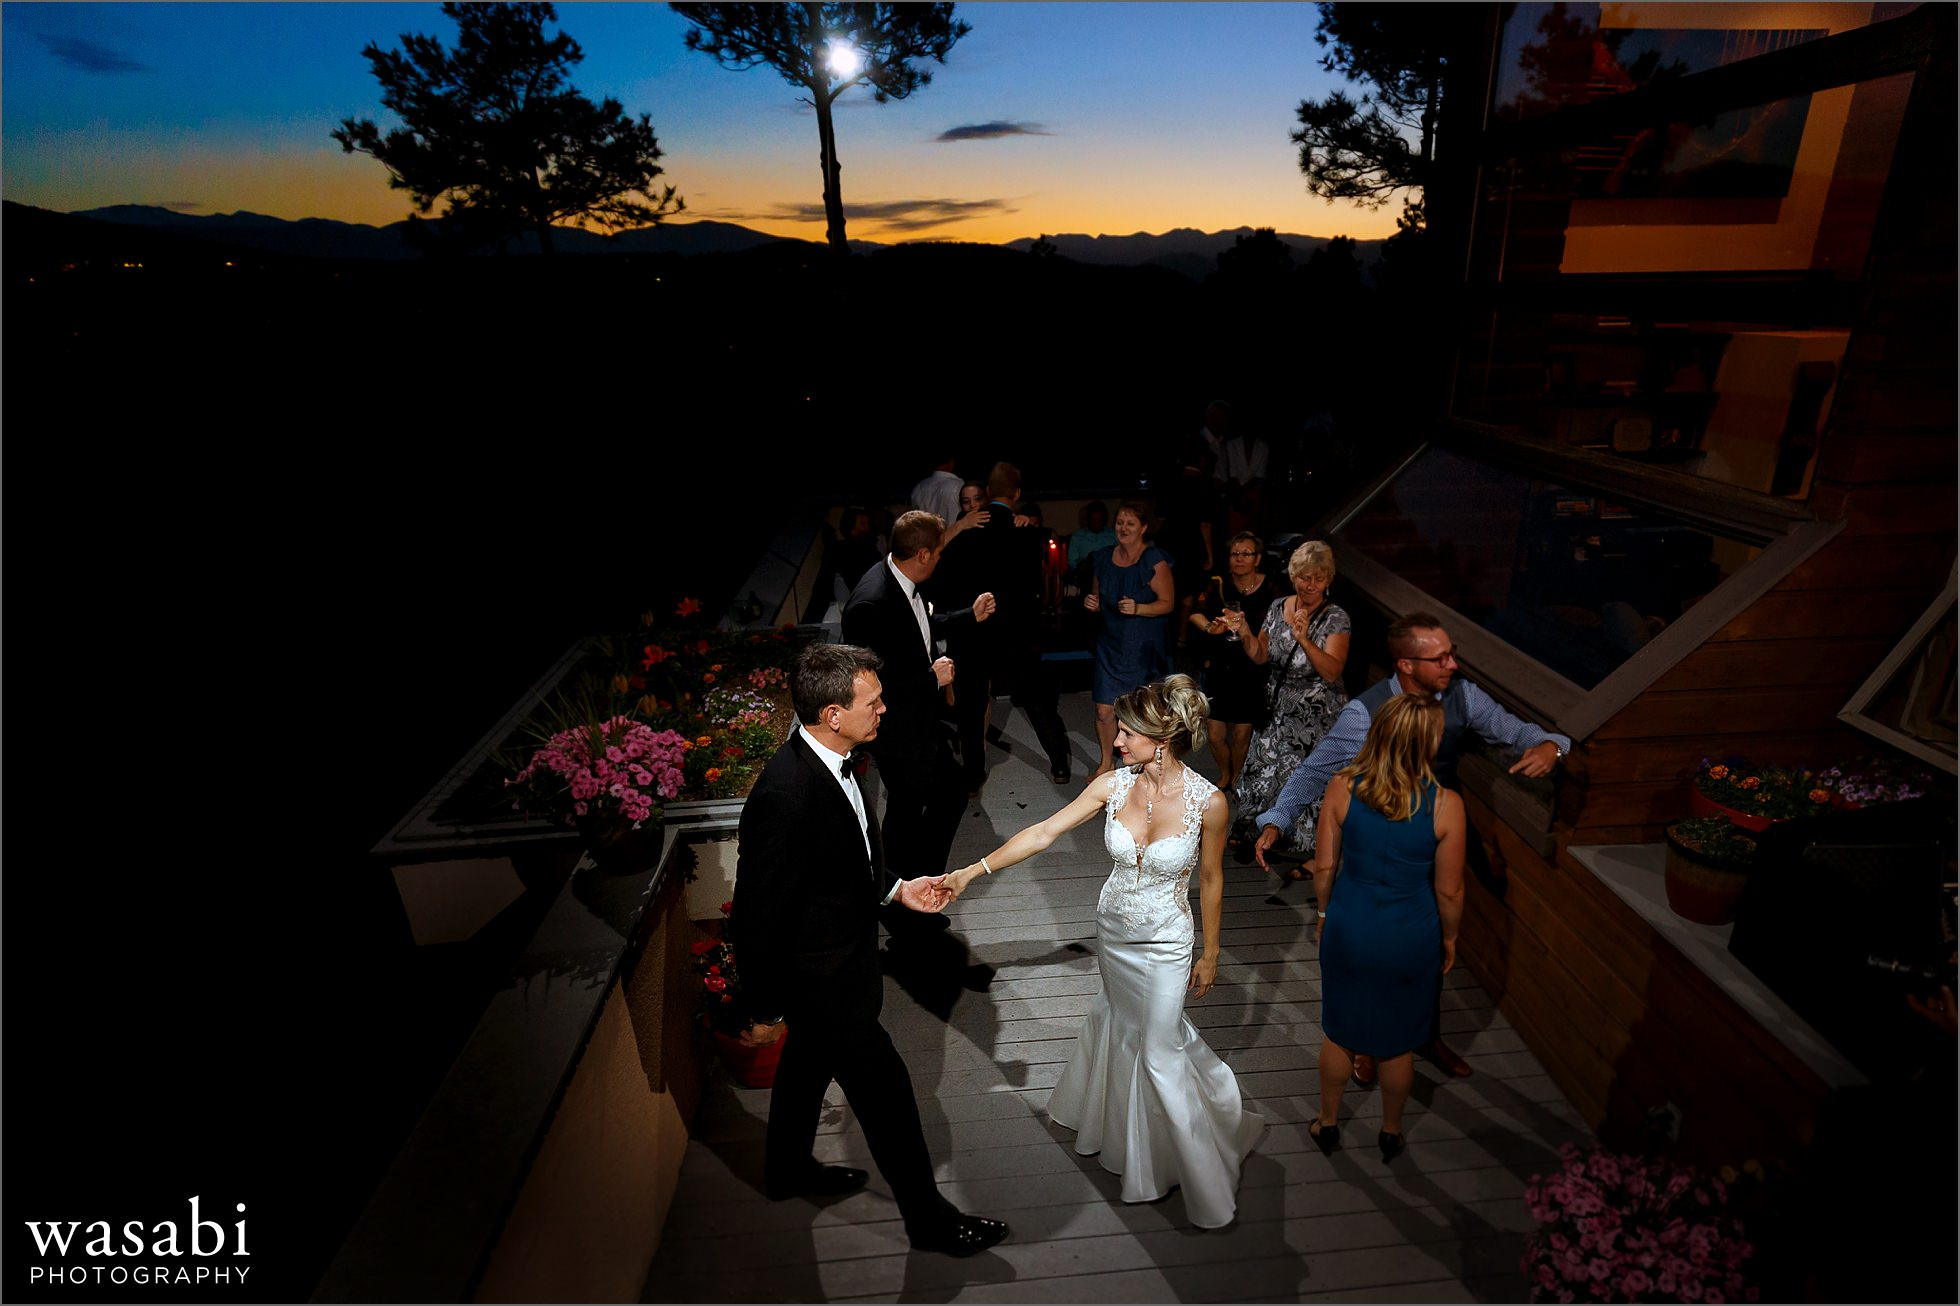 wide angle first dance at sunset during wedding reception at couples home on Lookout Mountain in Golden Colorado